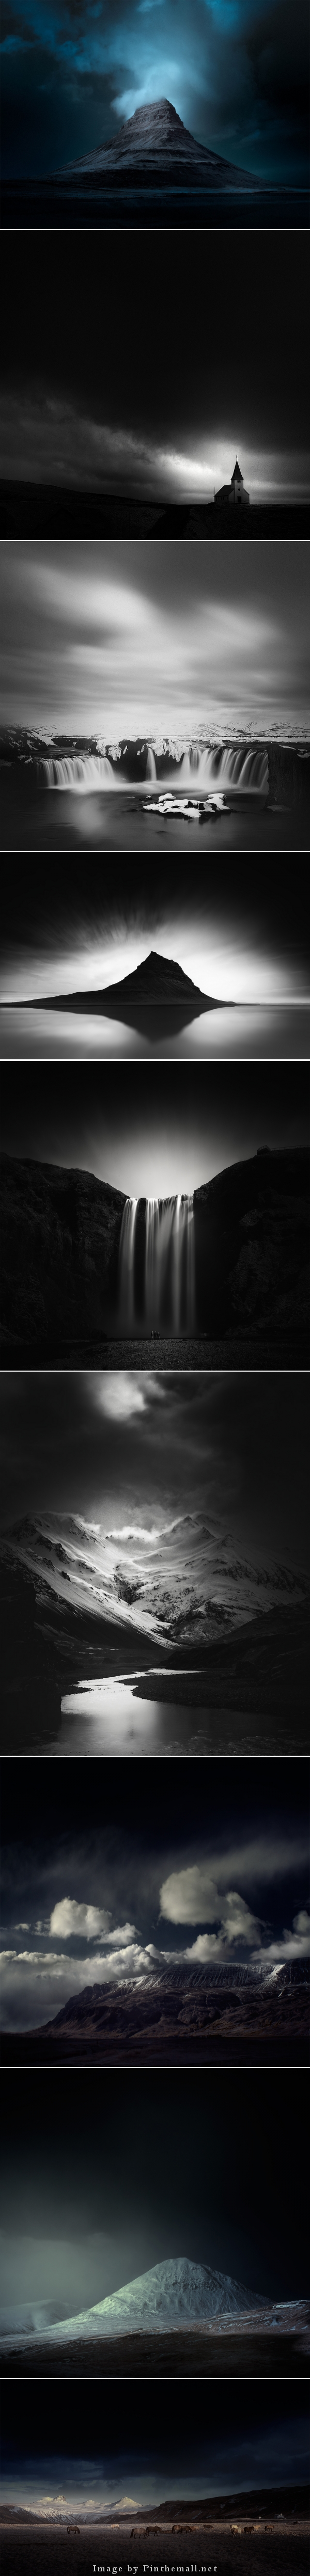 Andy Lee Icelandic Photographs